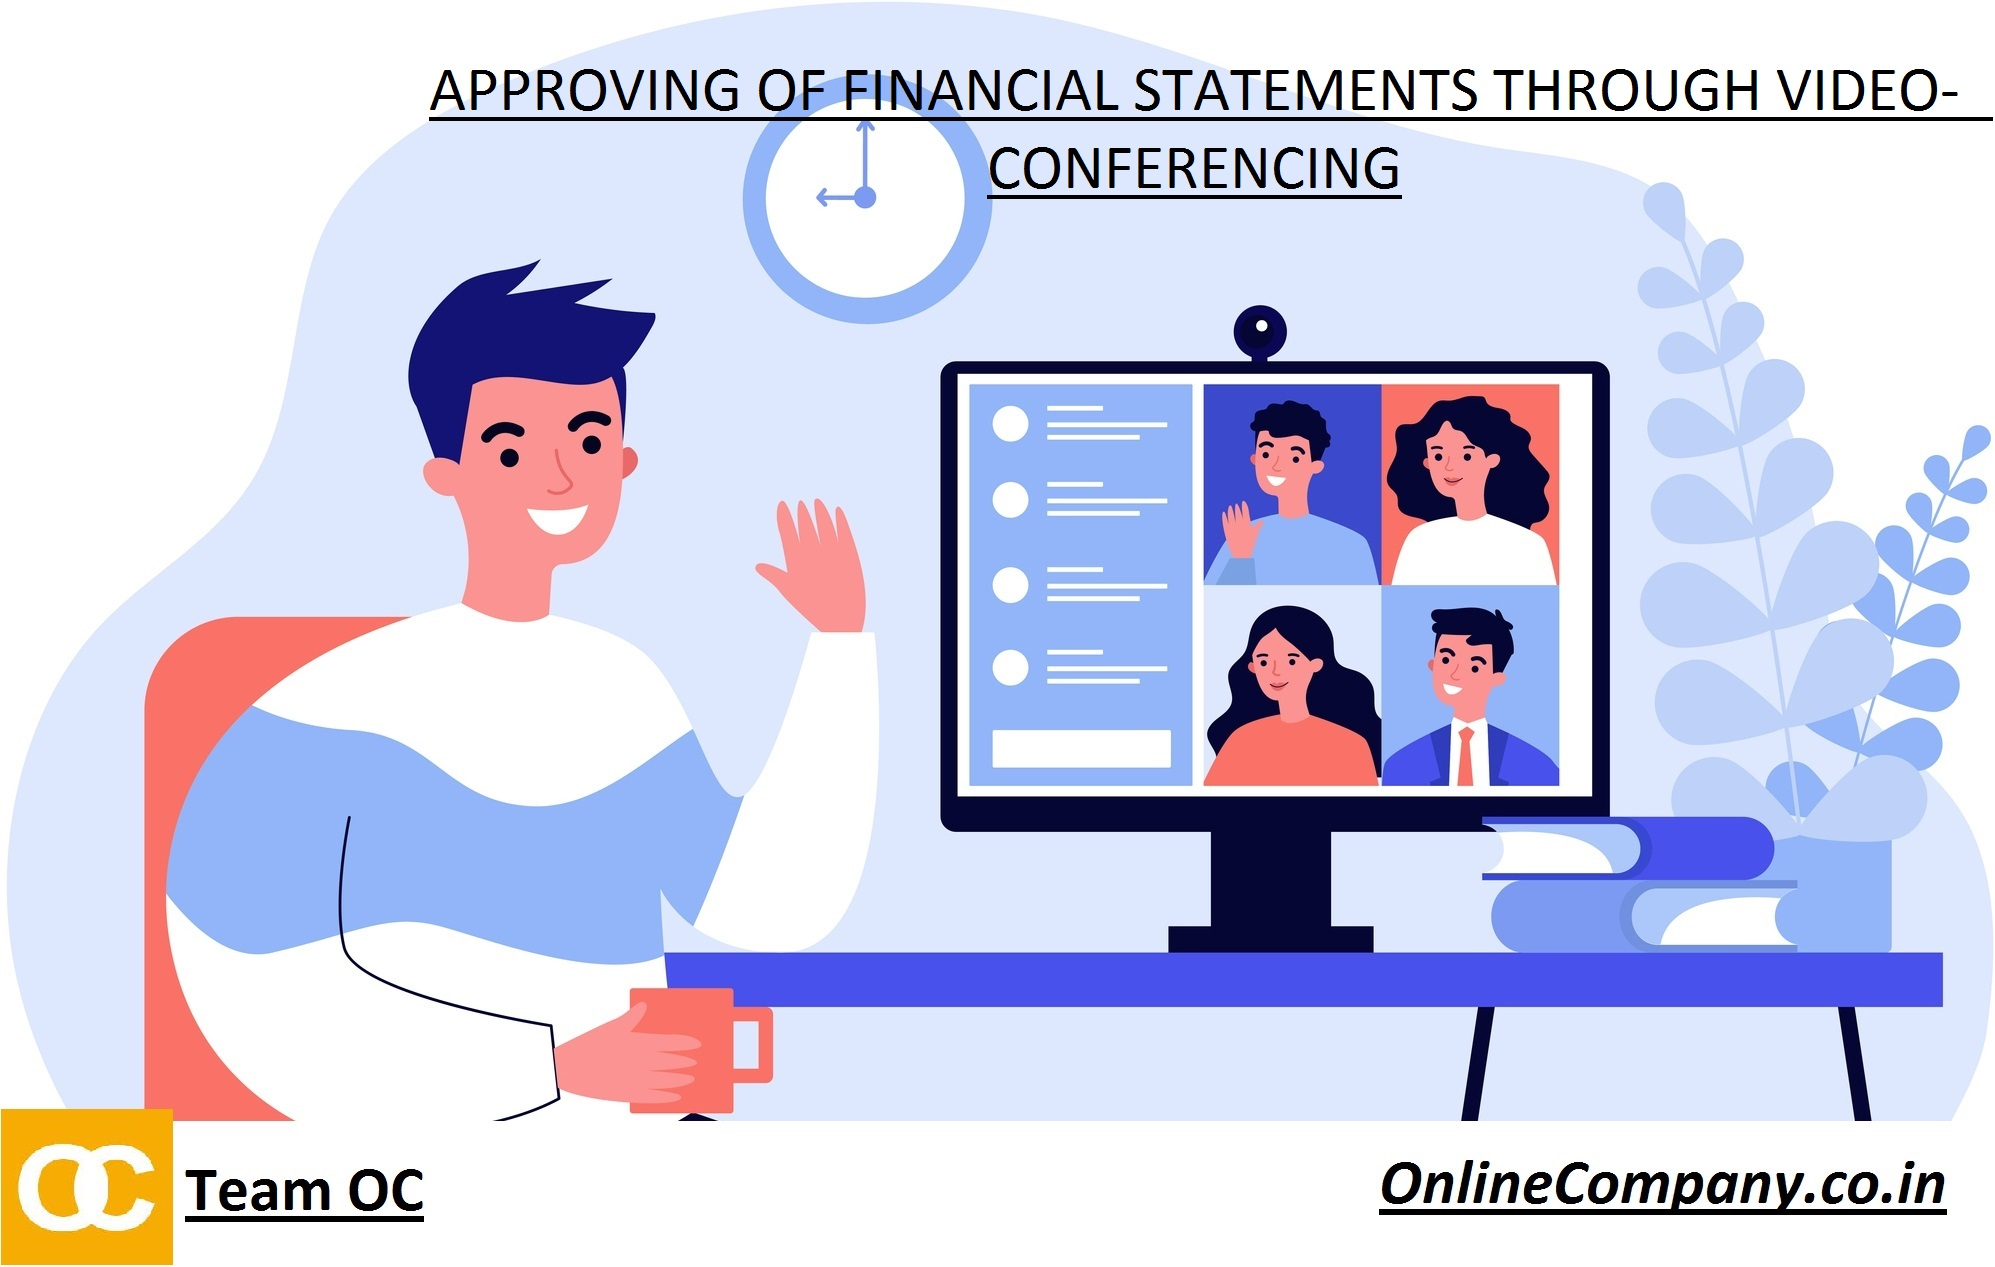 APPROVING OF FINANCIAL STATEMENTS THROUGH VIDEO-CONFERENCING